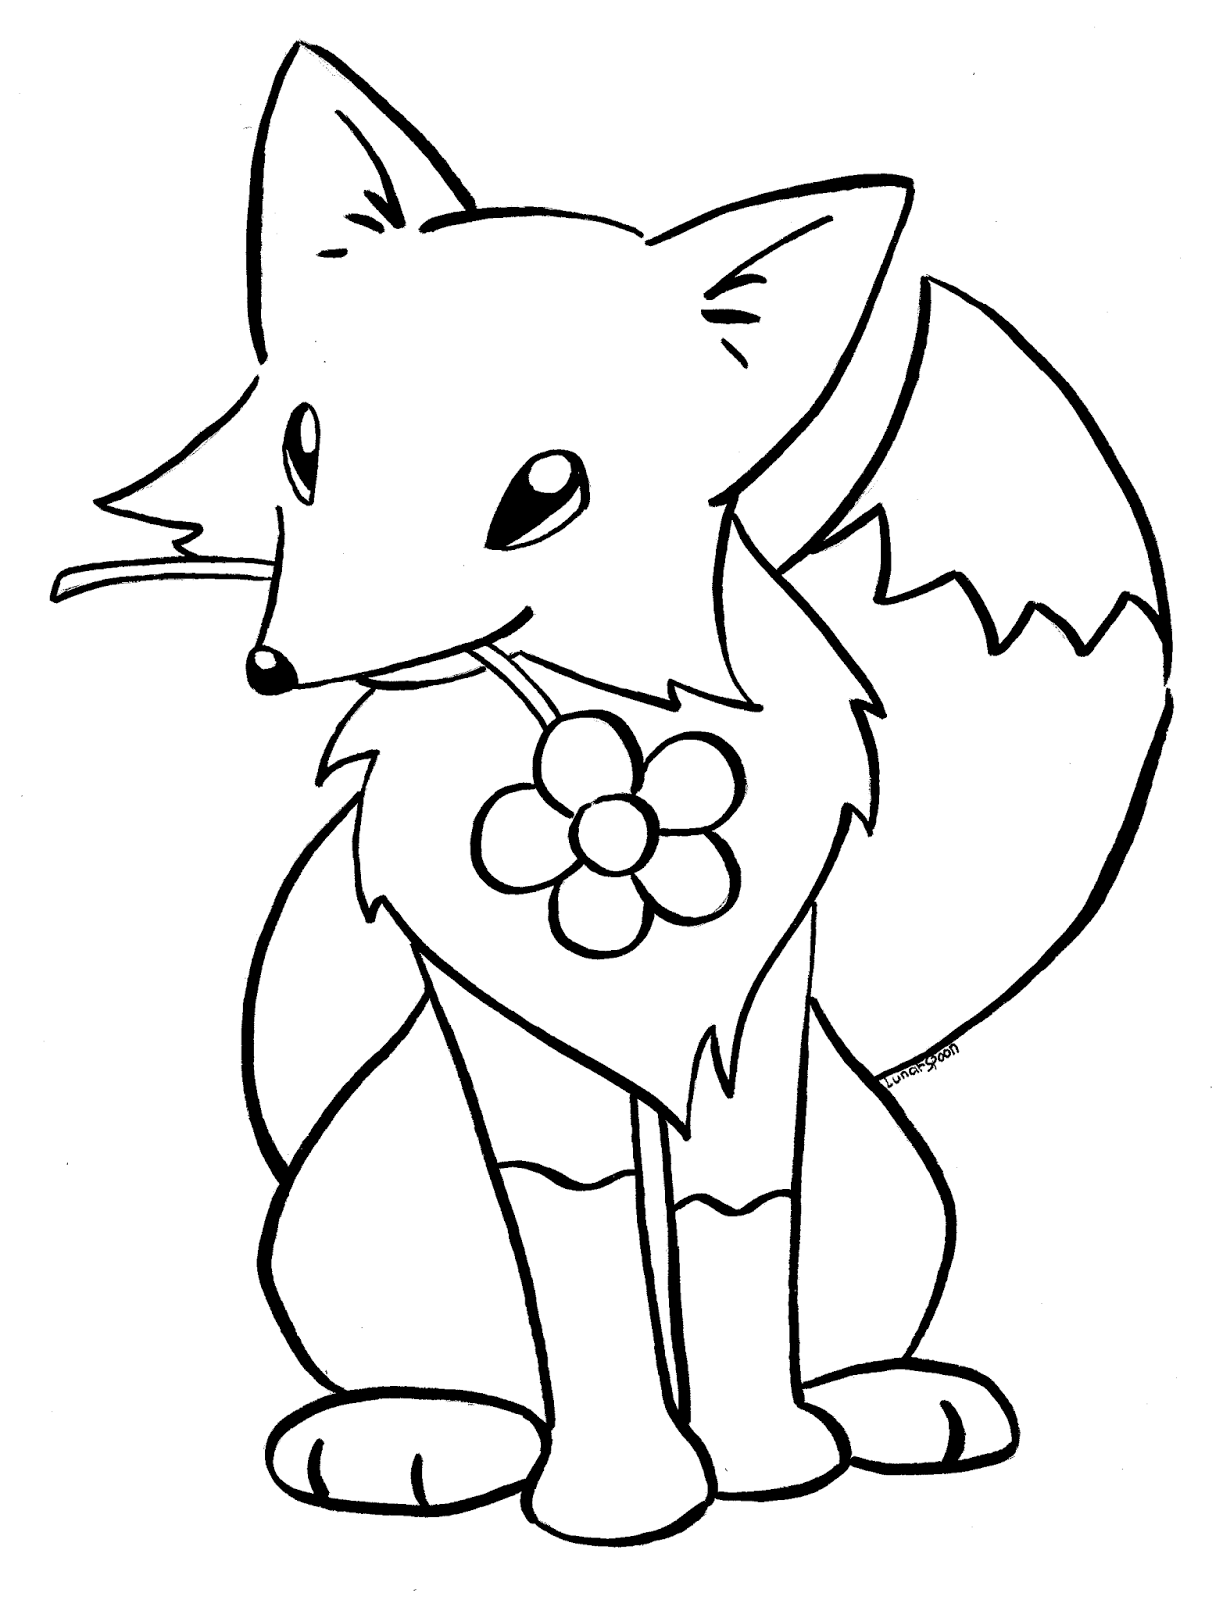 cute easy coloring pages coloring pages cute and easy coloring pages free and pages coloring easy cute